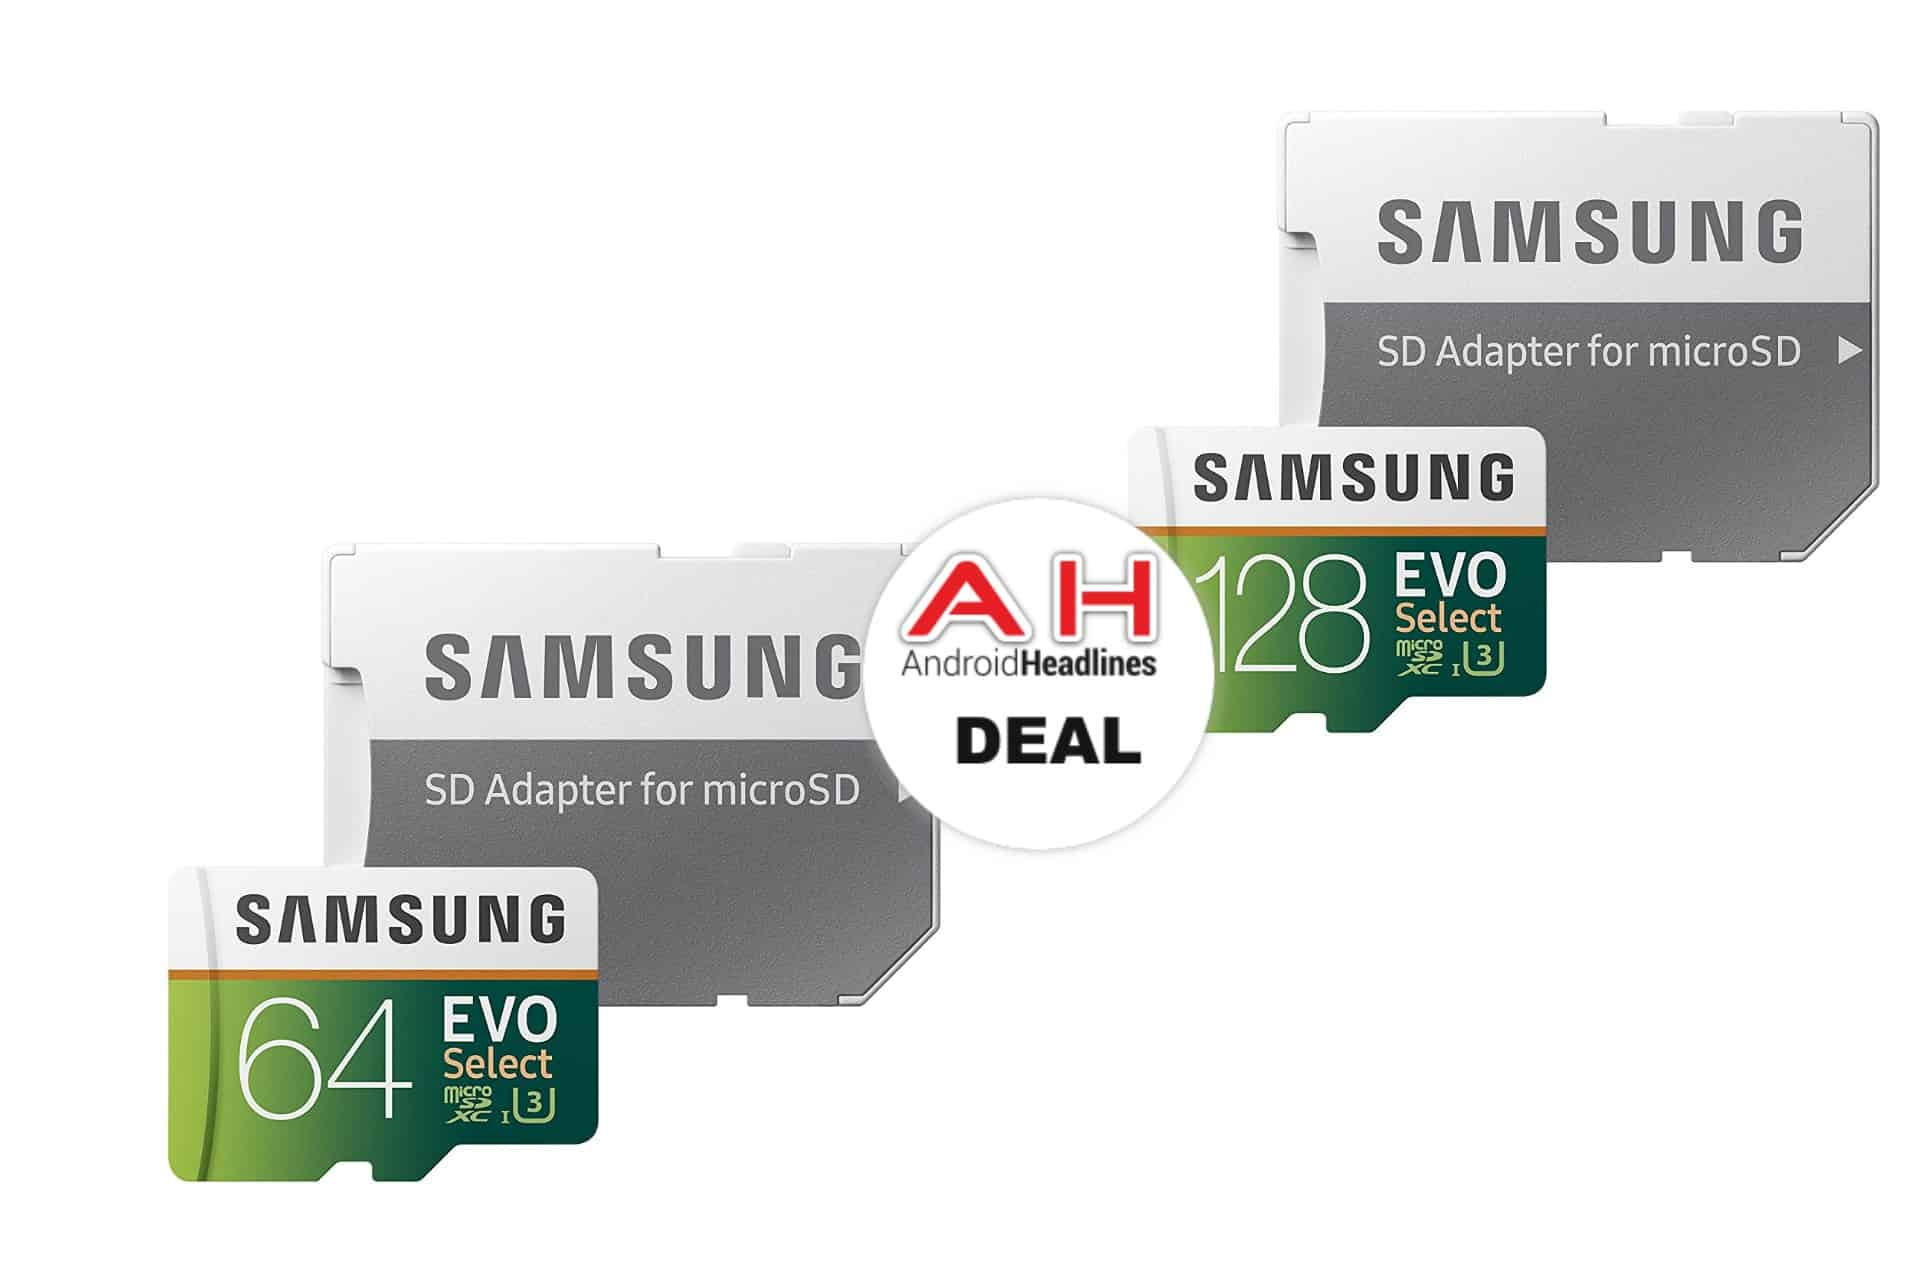 Samsung EVO Select Micro SD Cards Discounted Up To 40% At Amazon – October 2018